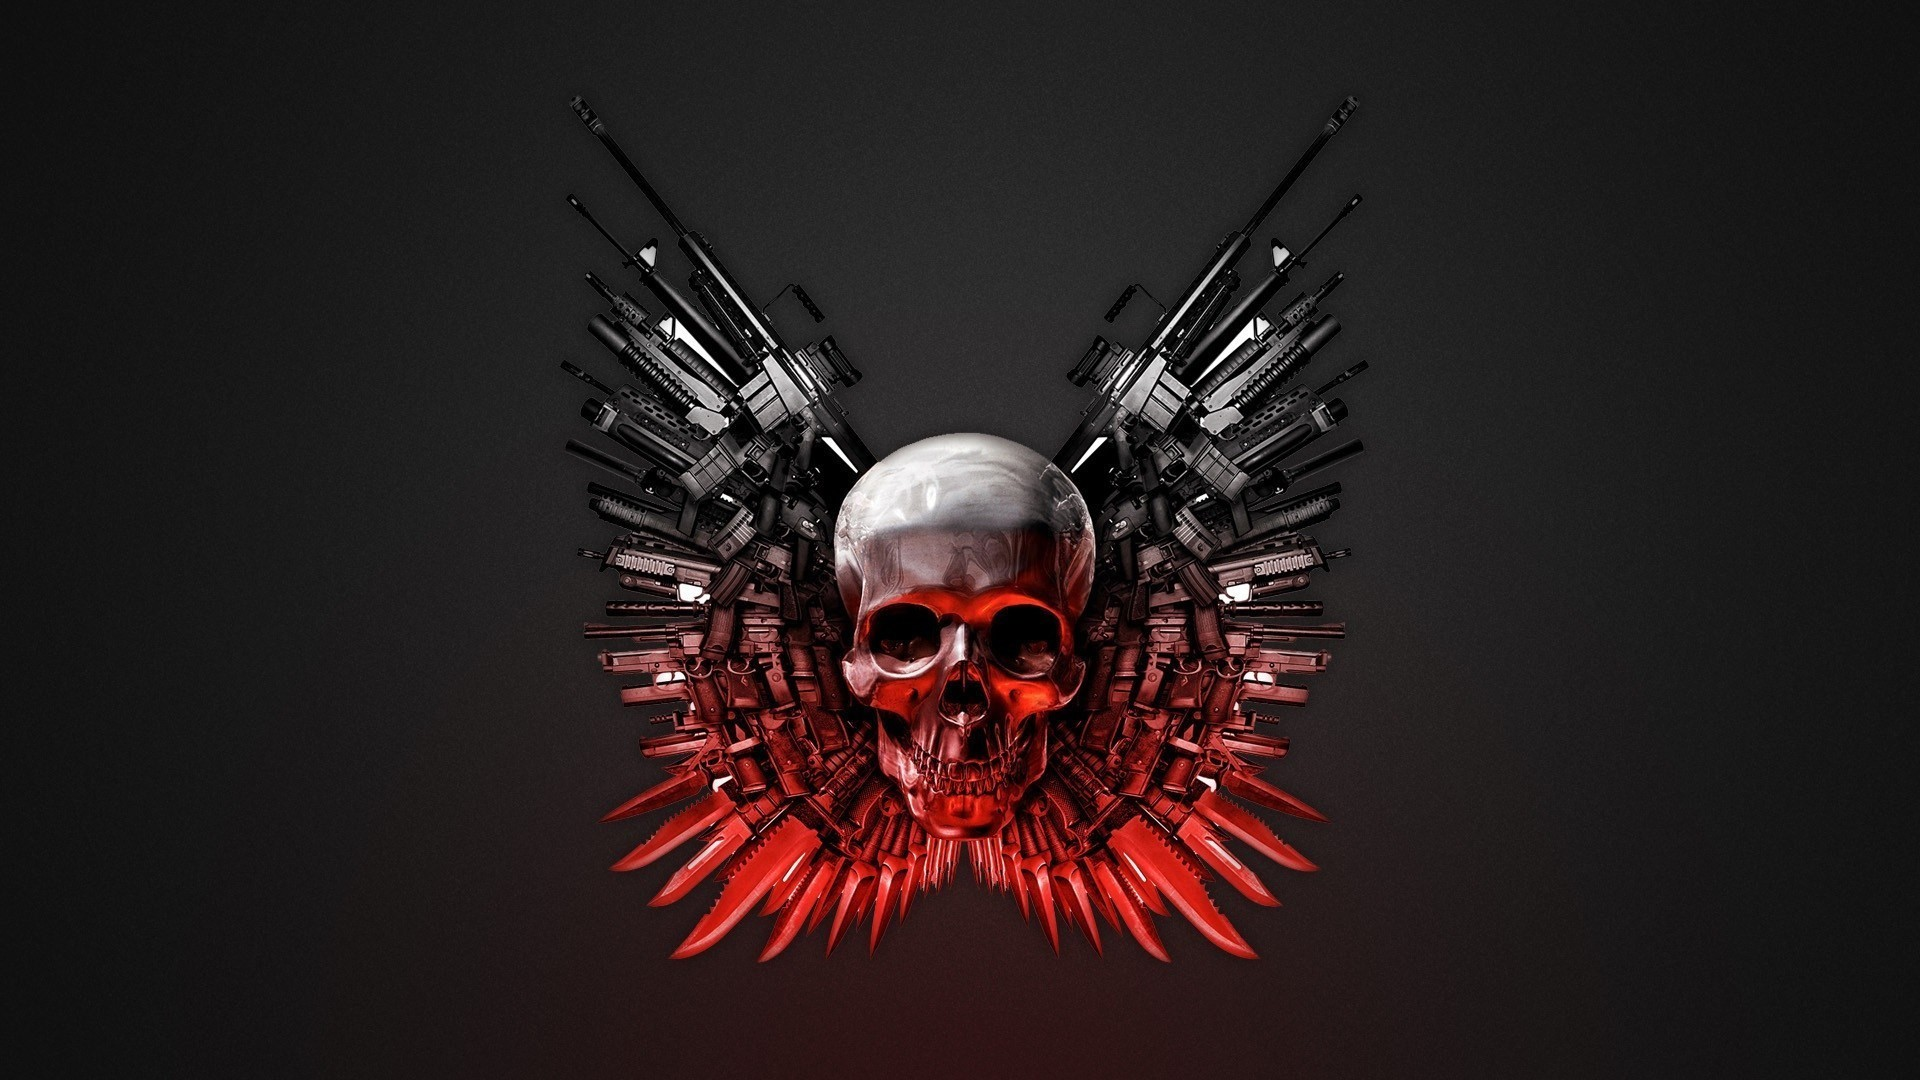 Res: 1920x1080, American Flag Punisher Skull Wallpaper 35